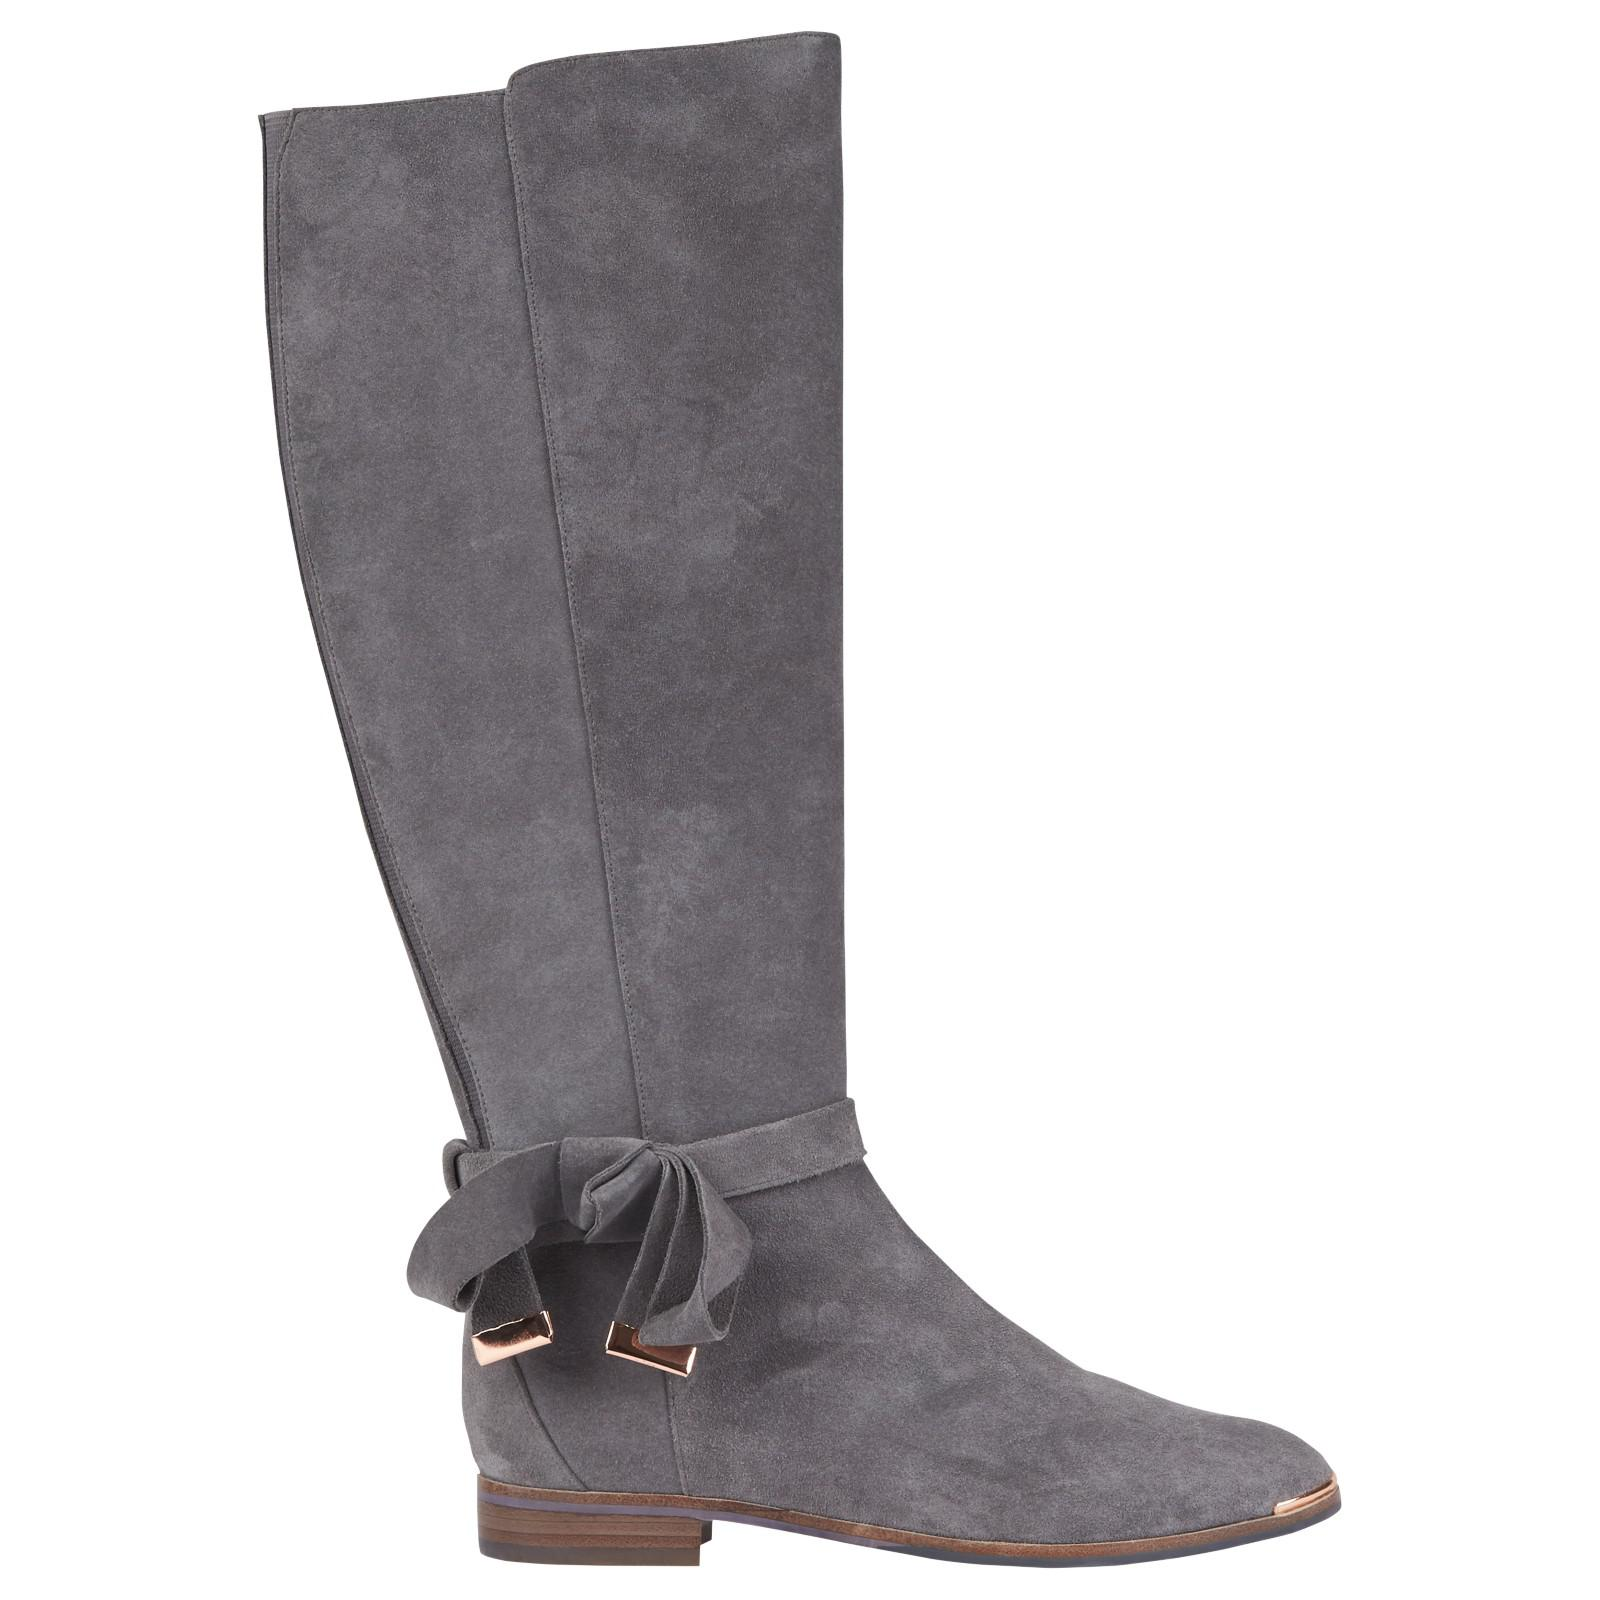 low priced ca3e1 6d528 ted-baker-Dark-Alrami-Suede-Knee-High-Boot.jpeg